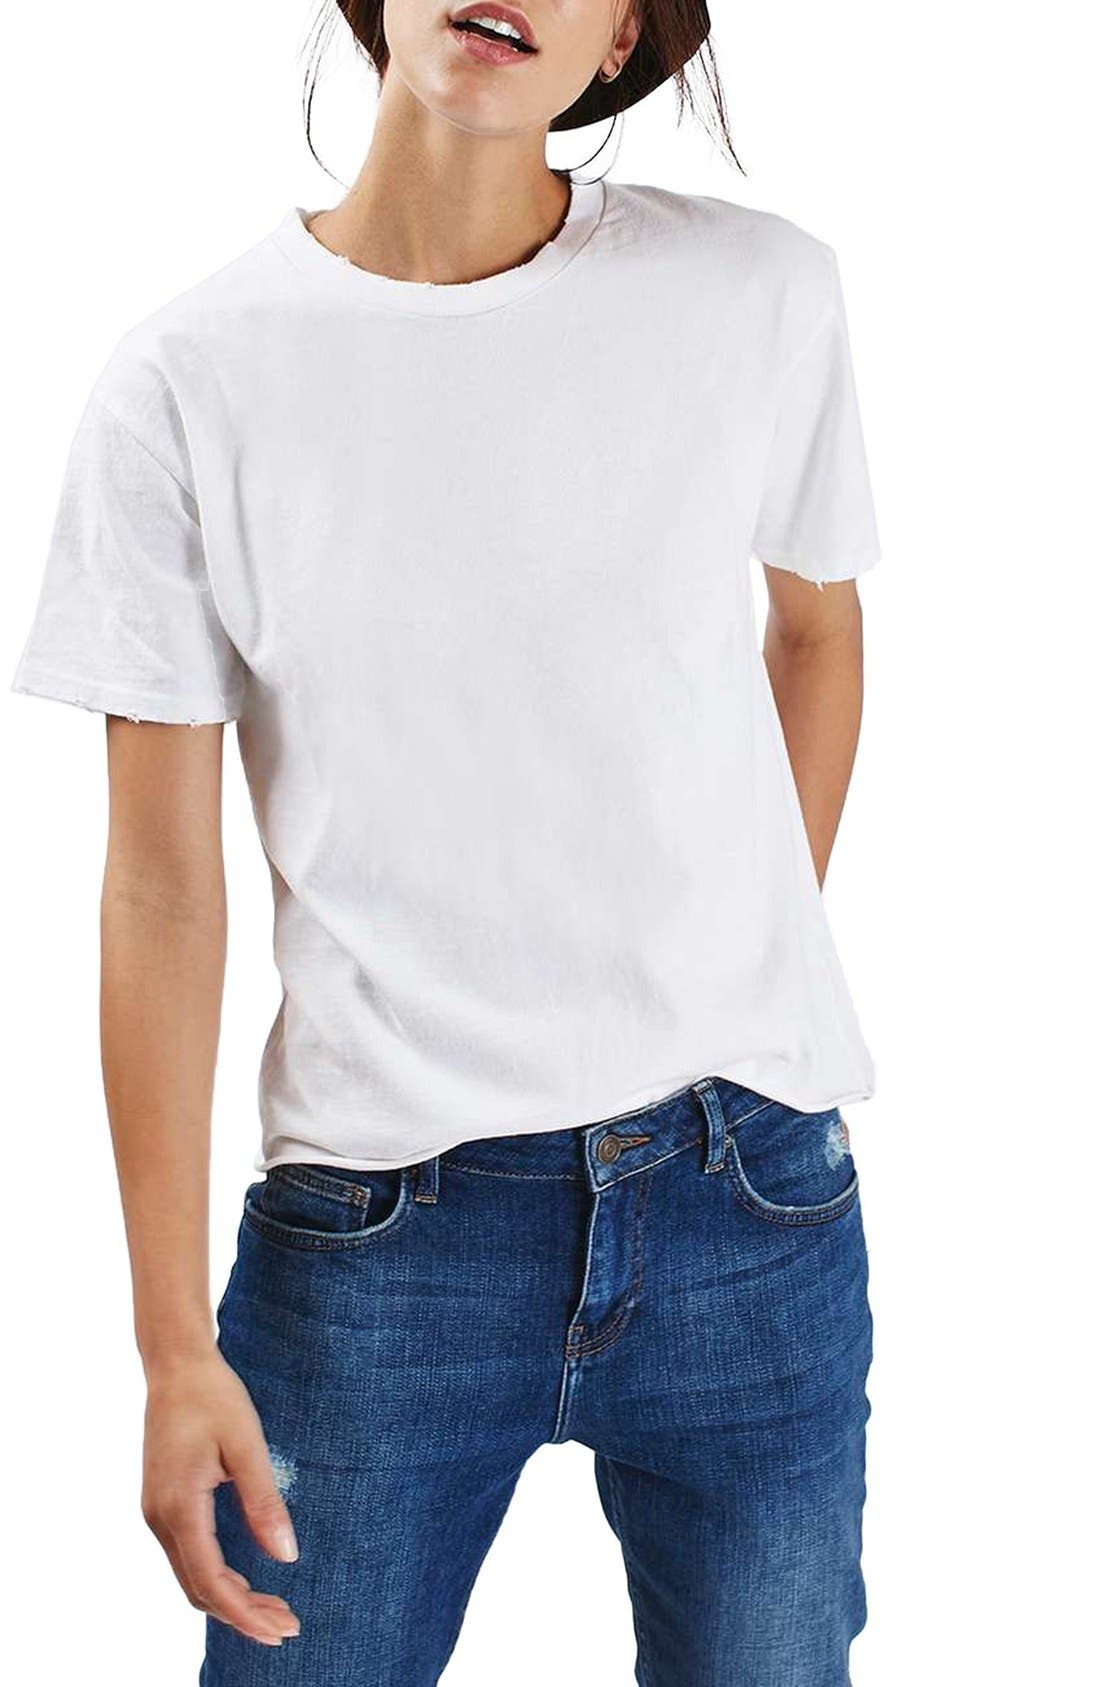 Topshop Distressed Edge Tee